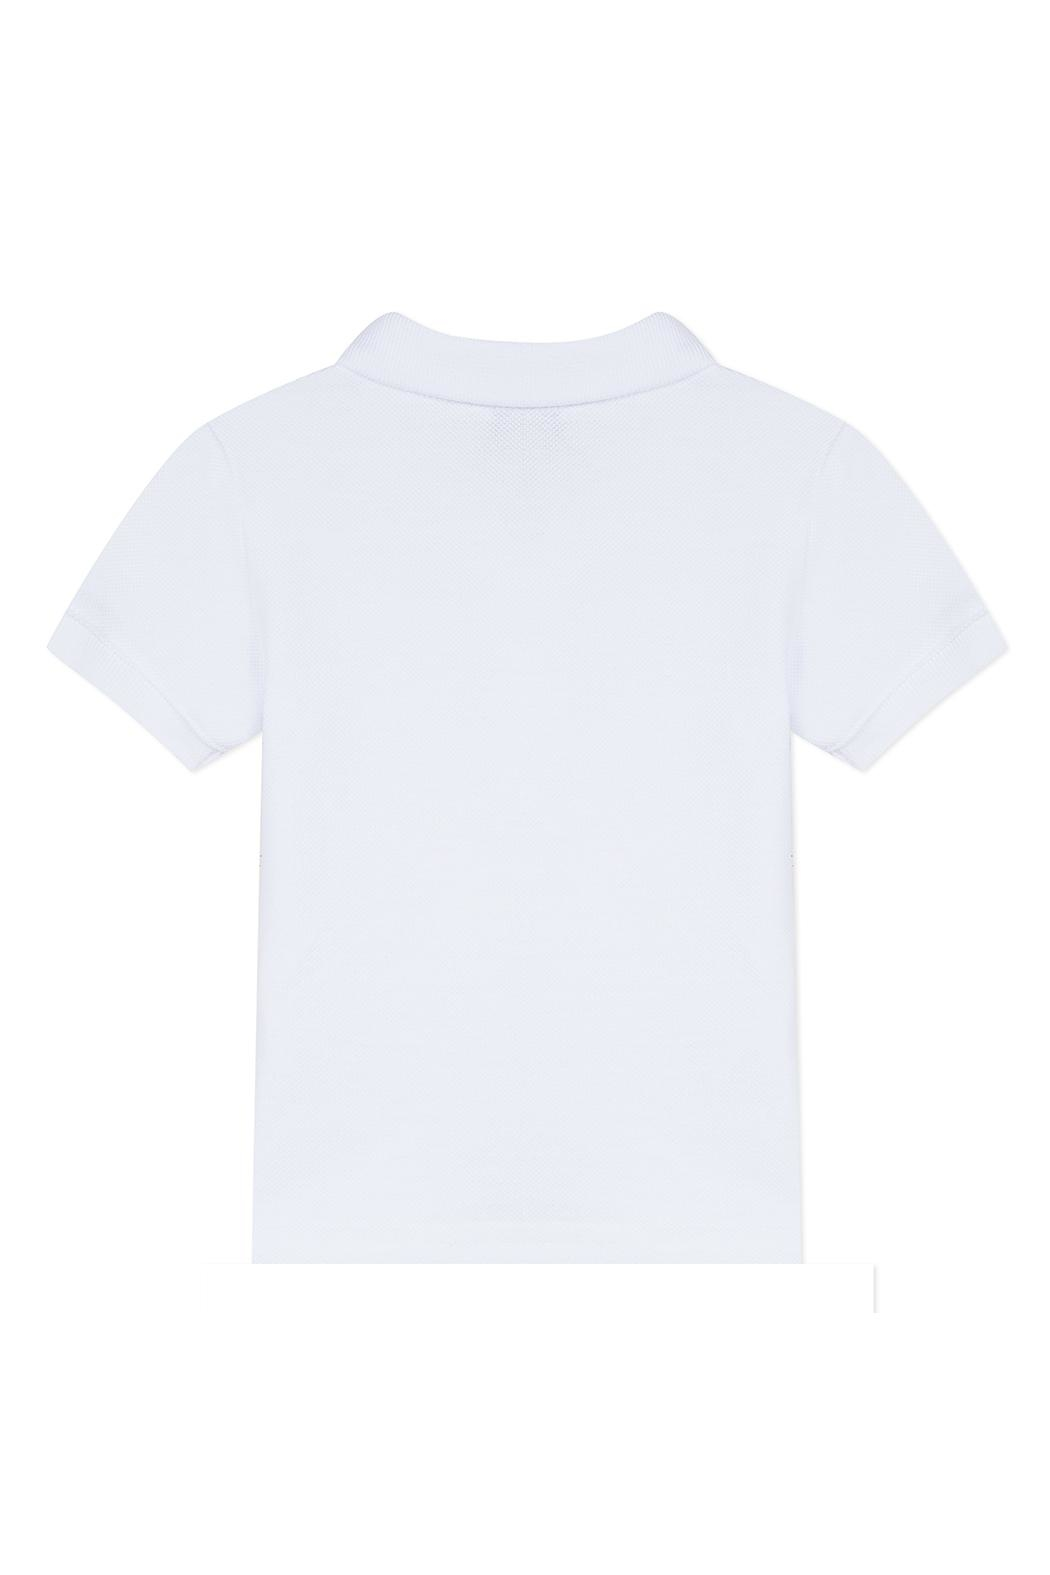 Paul Smith Junior White Toine Polo-Top - Front Full Image